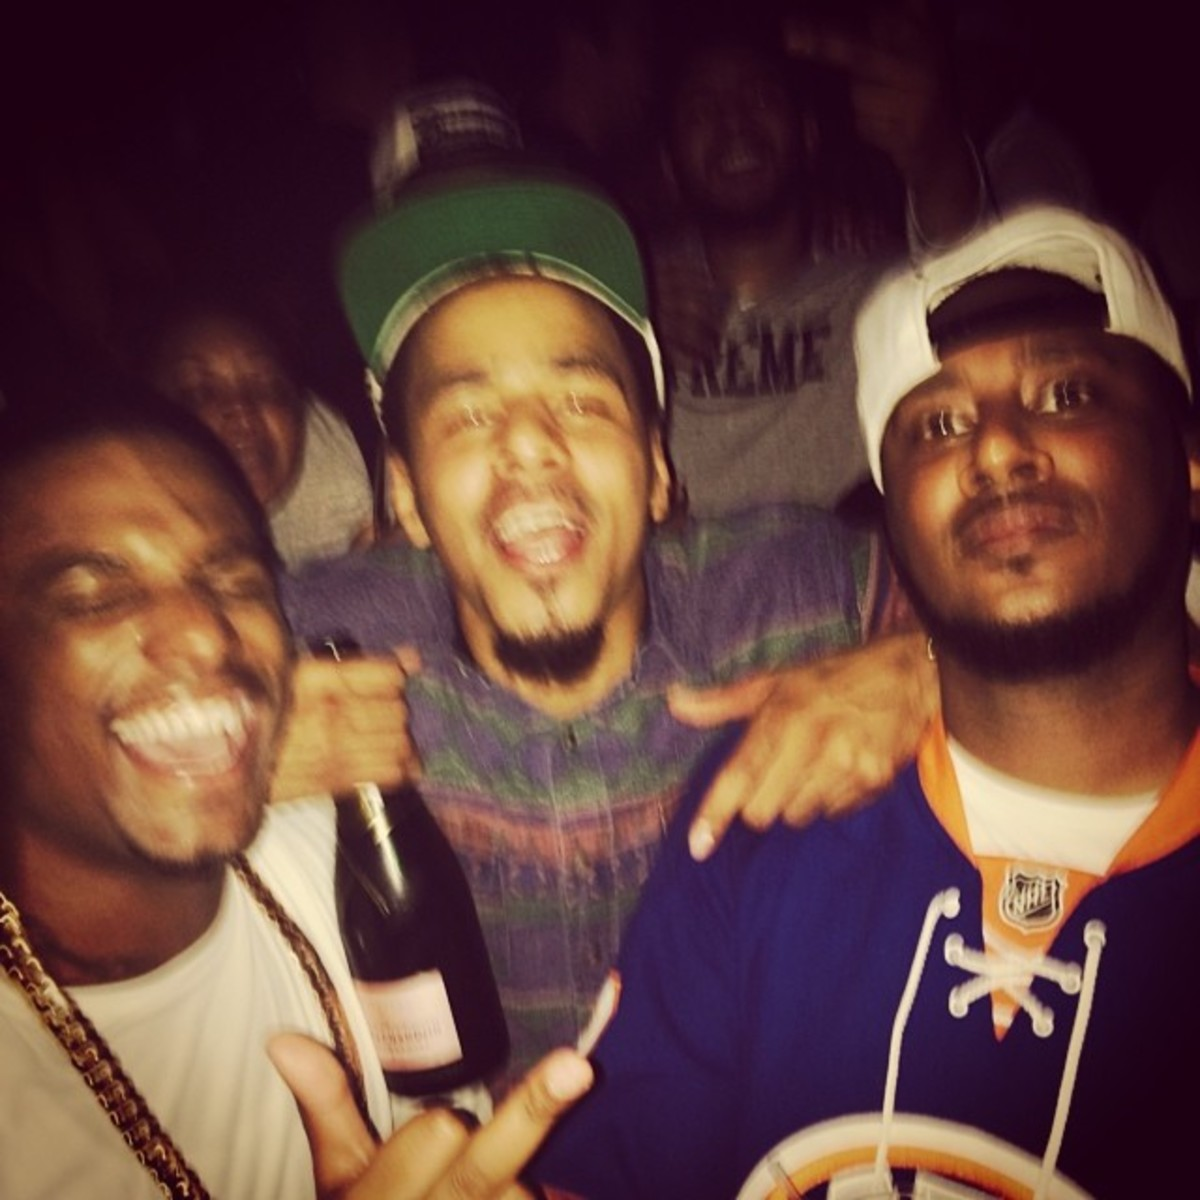 J. Cole drunk in 2014